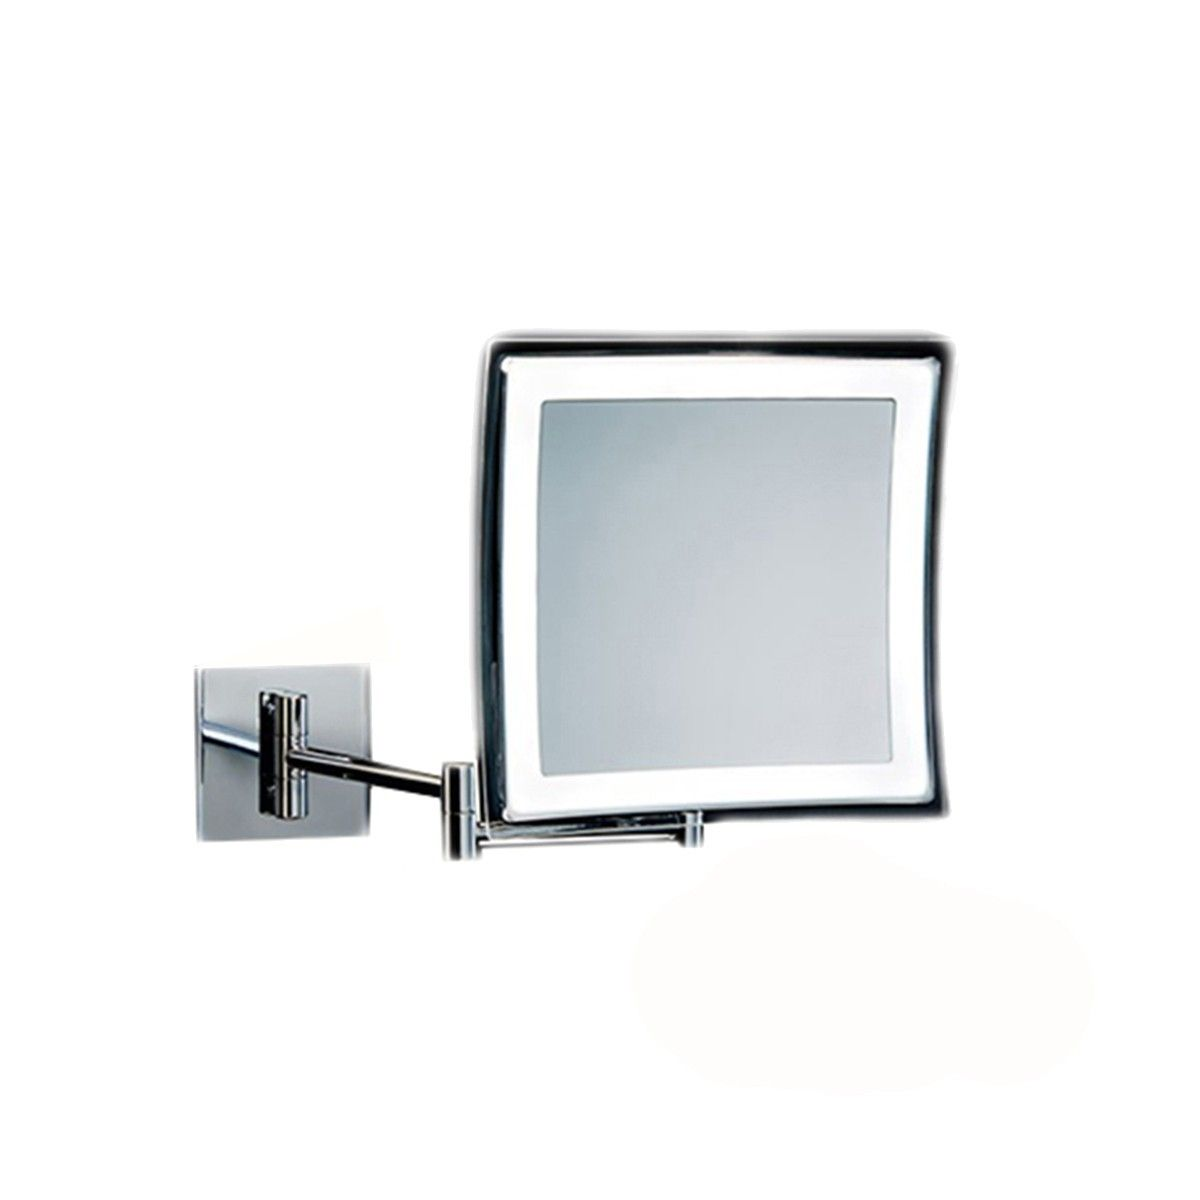 Battery Operated Wall Mounted Magnifying Mirror | http://drrw.us ...